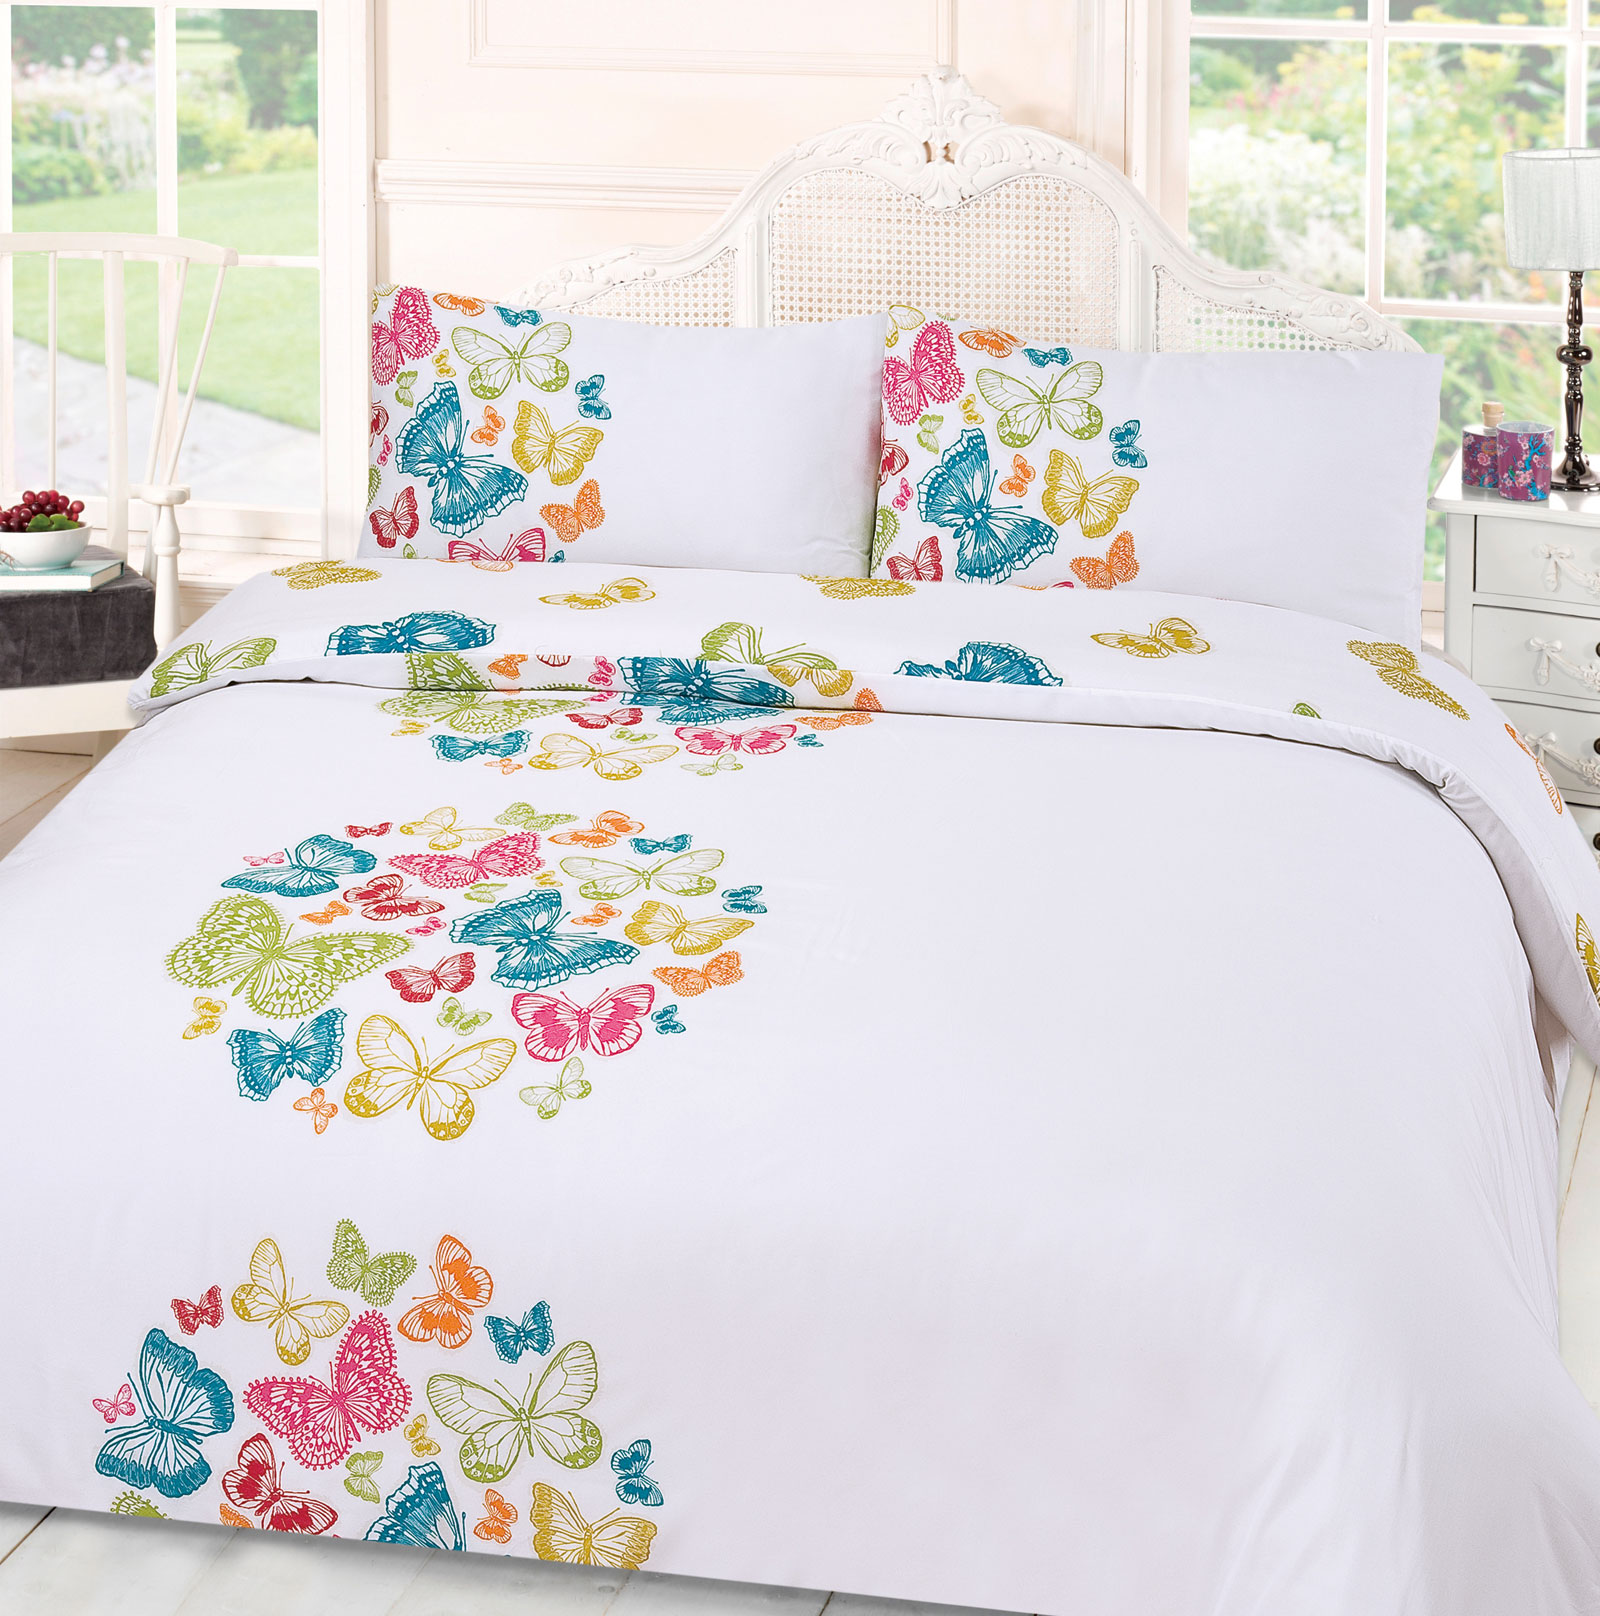 comforter bedding with interior winnie pink comfoter set ideas wooden bedroom sets laminated white toddler single girl glaze lovely floor butterfly on the bed pooh